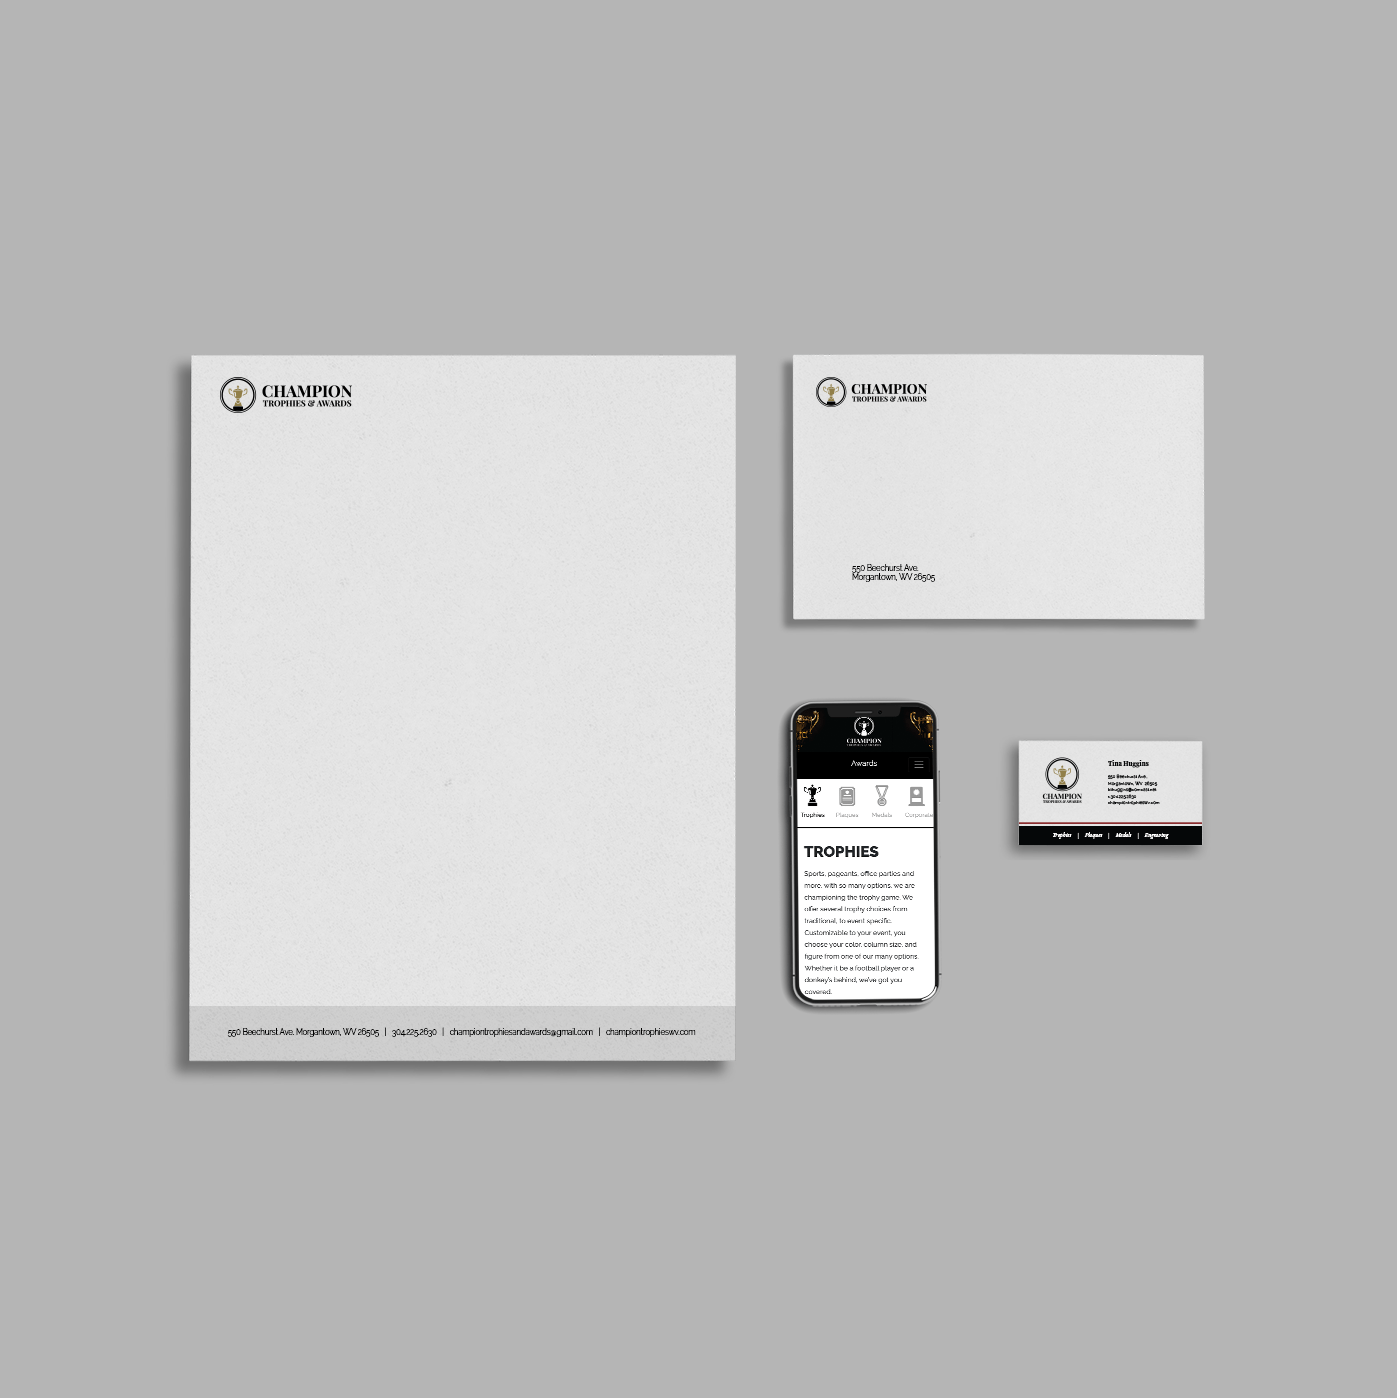 Stationary set consisting of a letterhead, envelope, mobile website, and business card